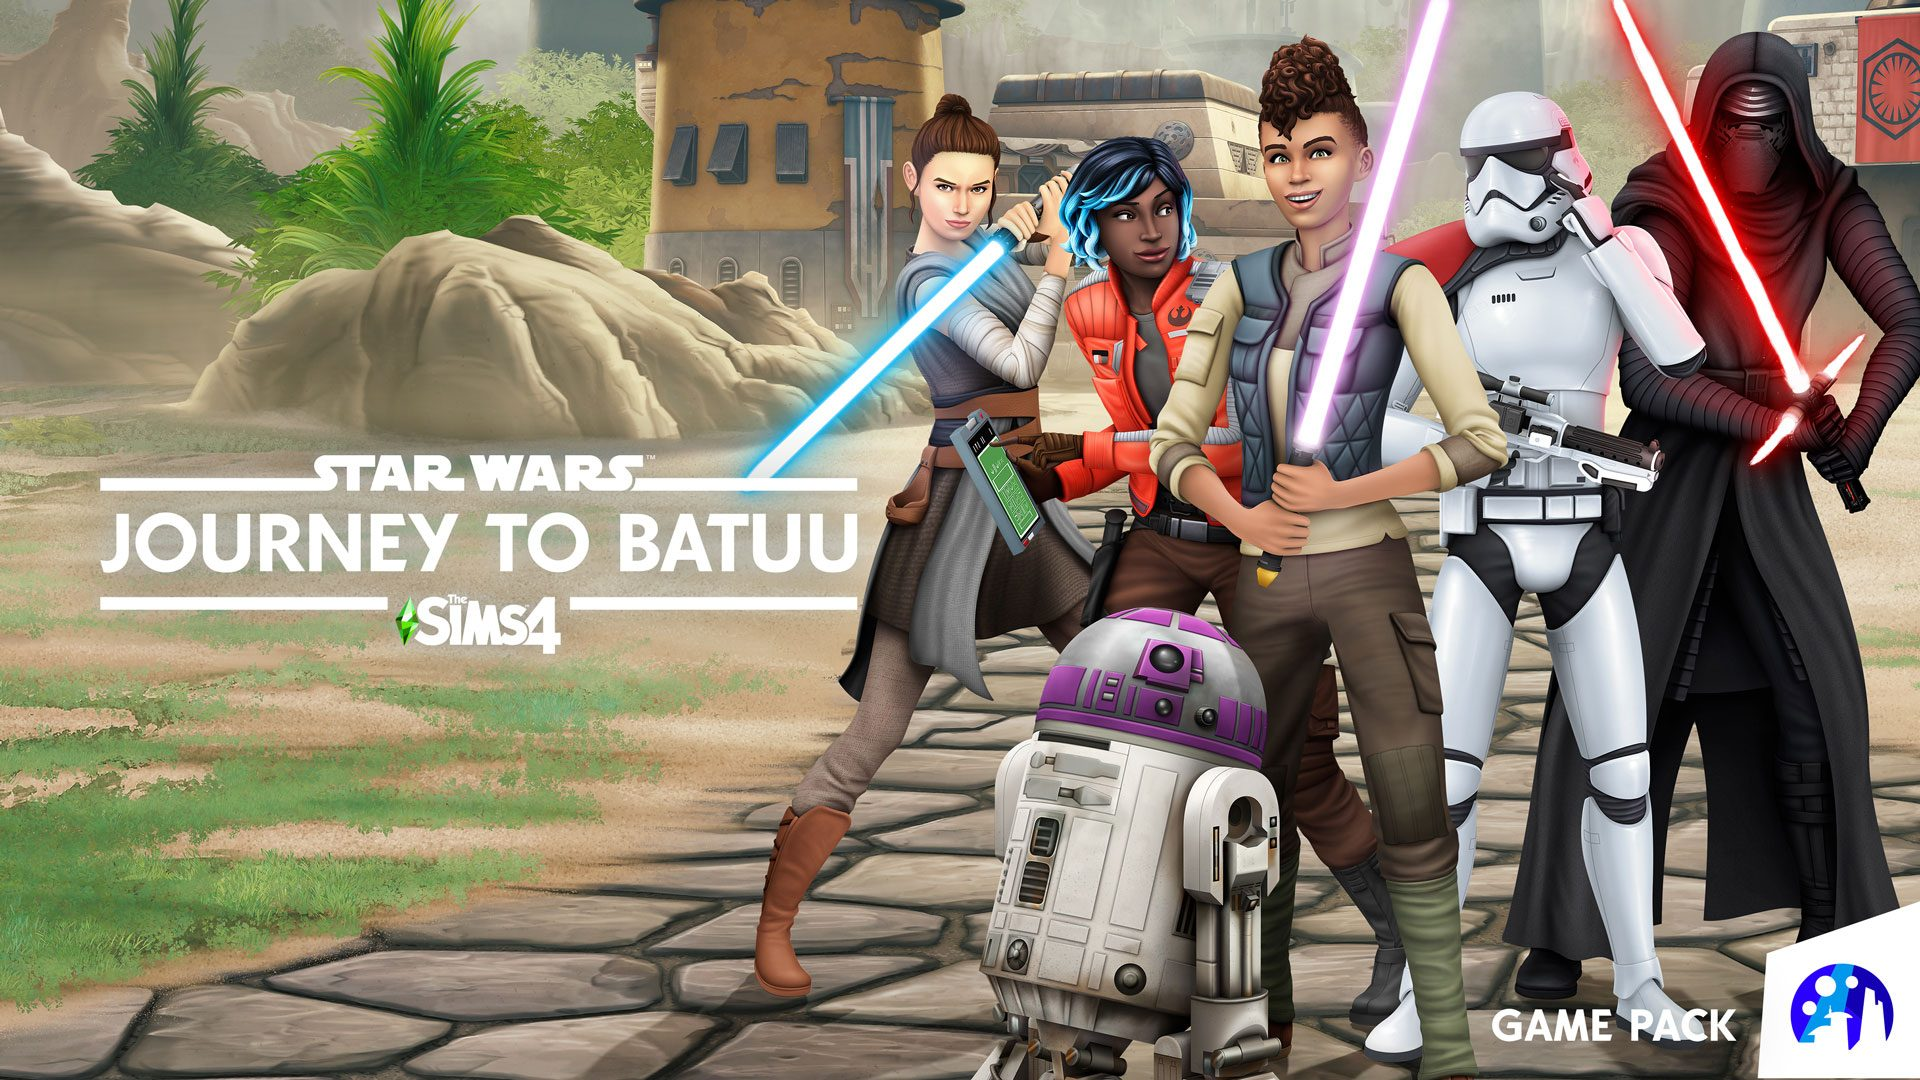 The Sims 4: Star Wars Journey to Batuu Xbox One